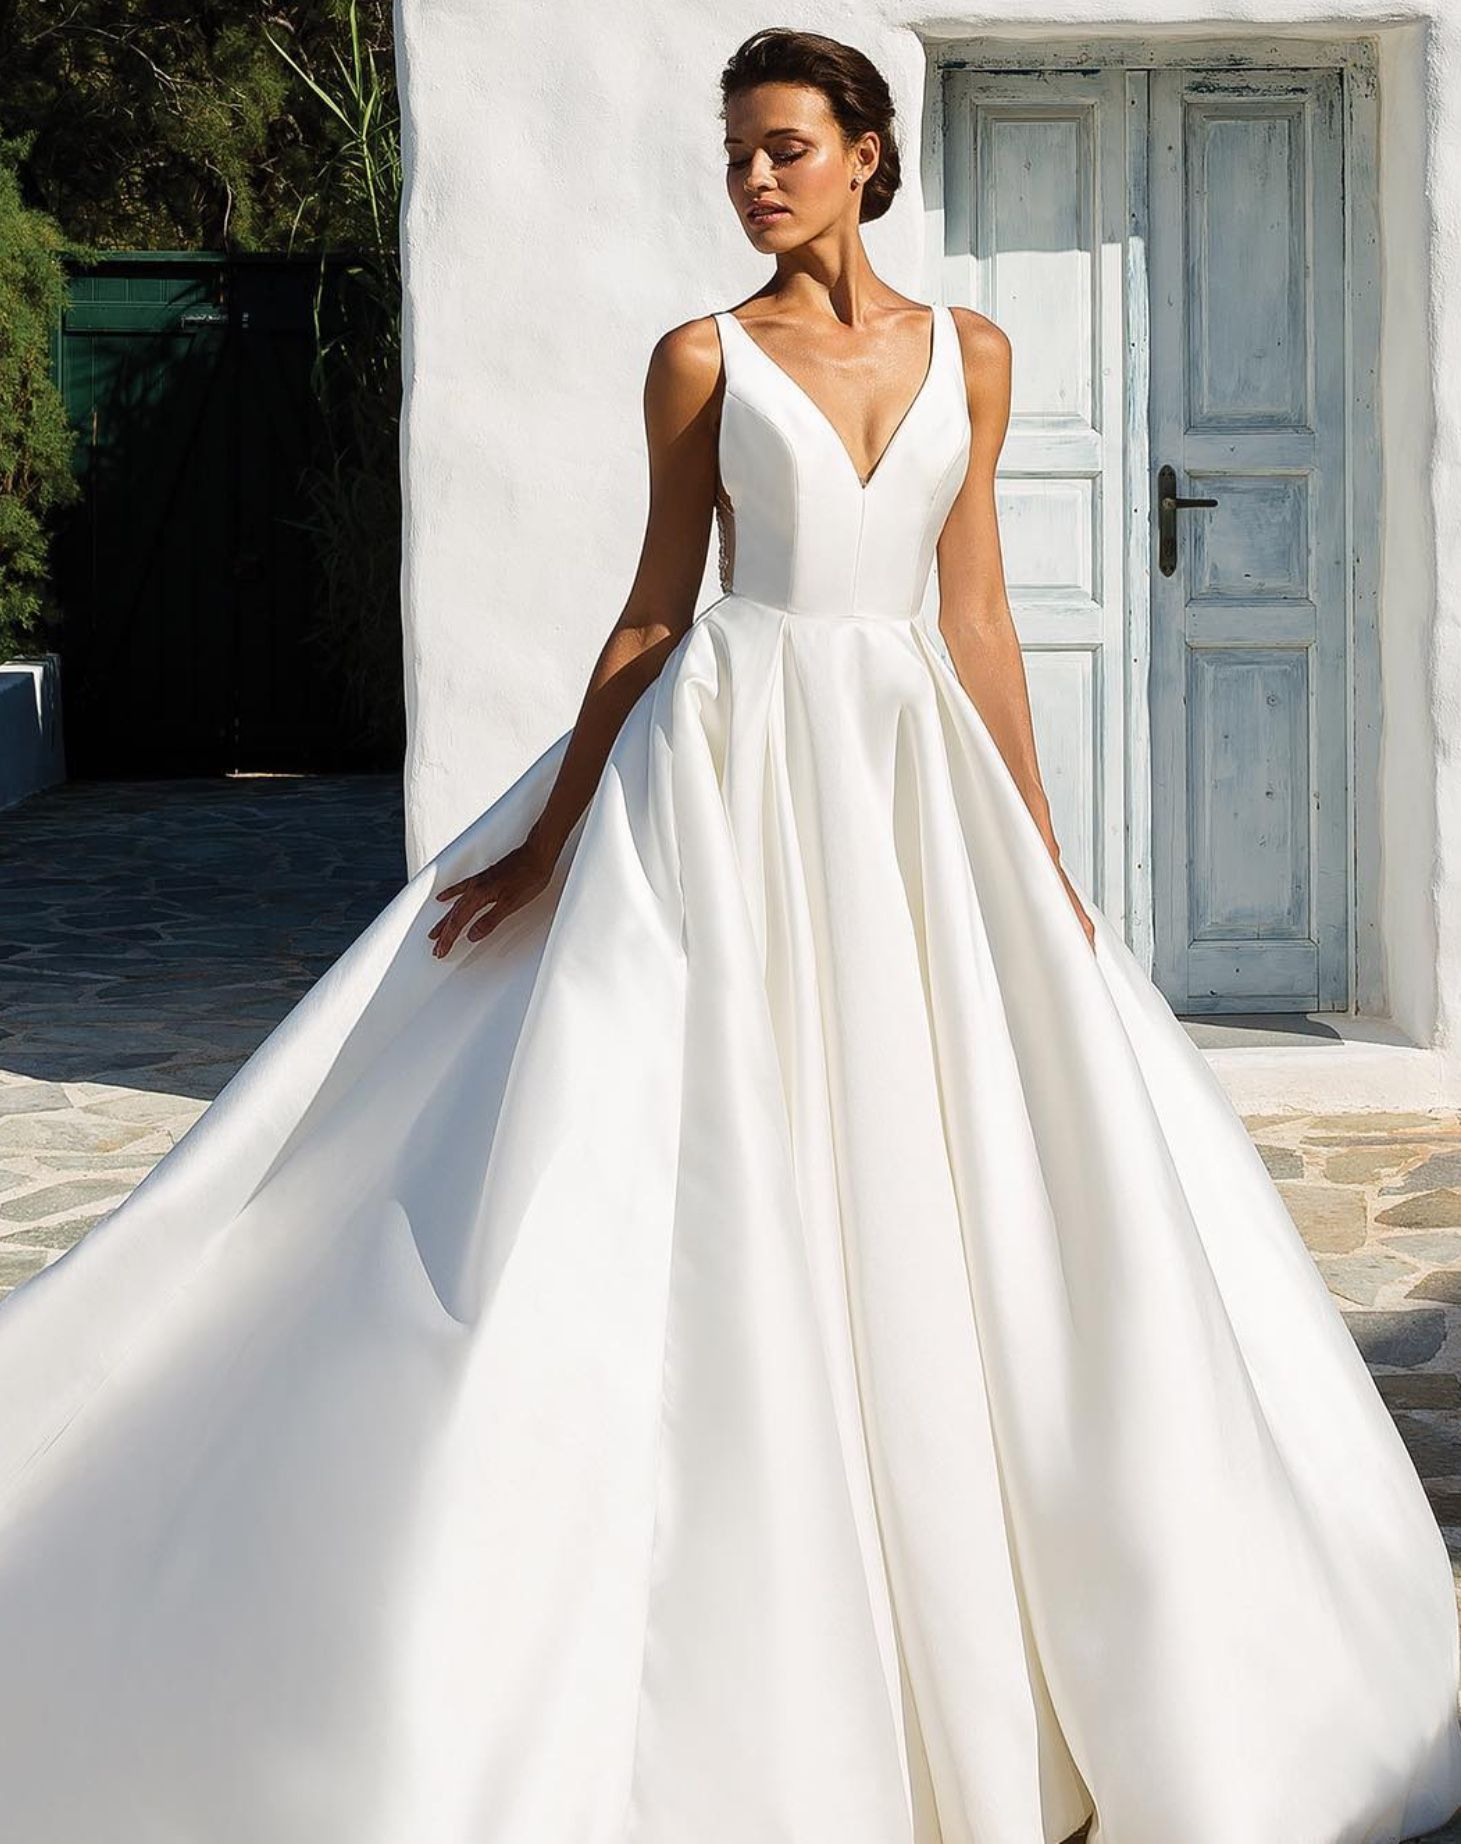 Pin by Brides by Liza on Satin wedding gowns (With images